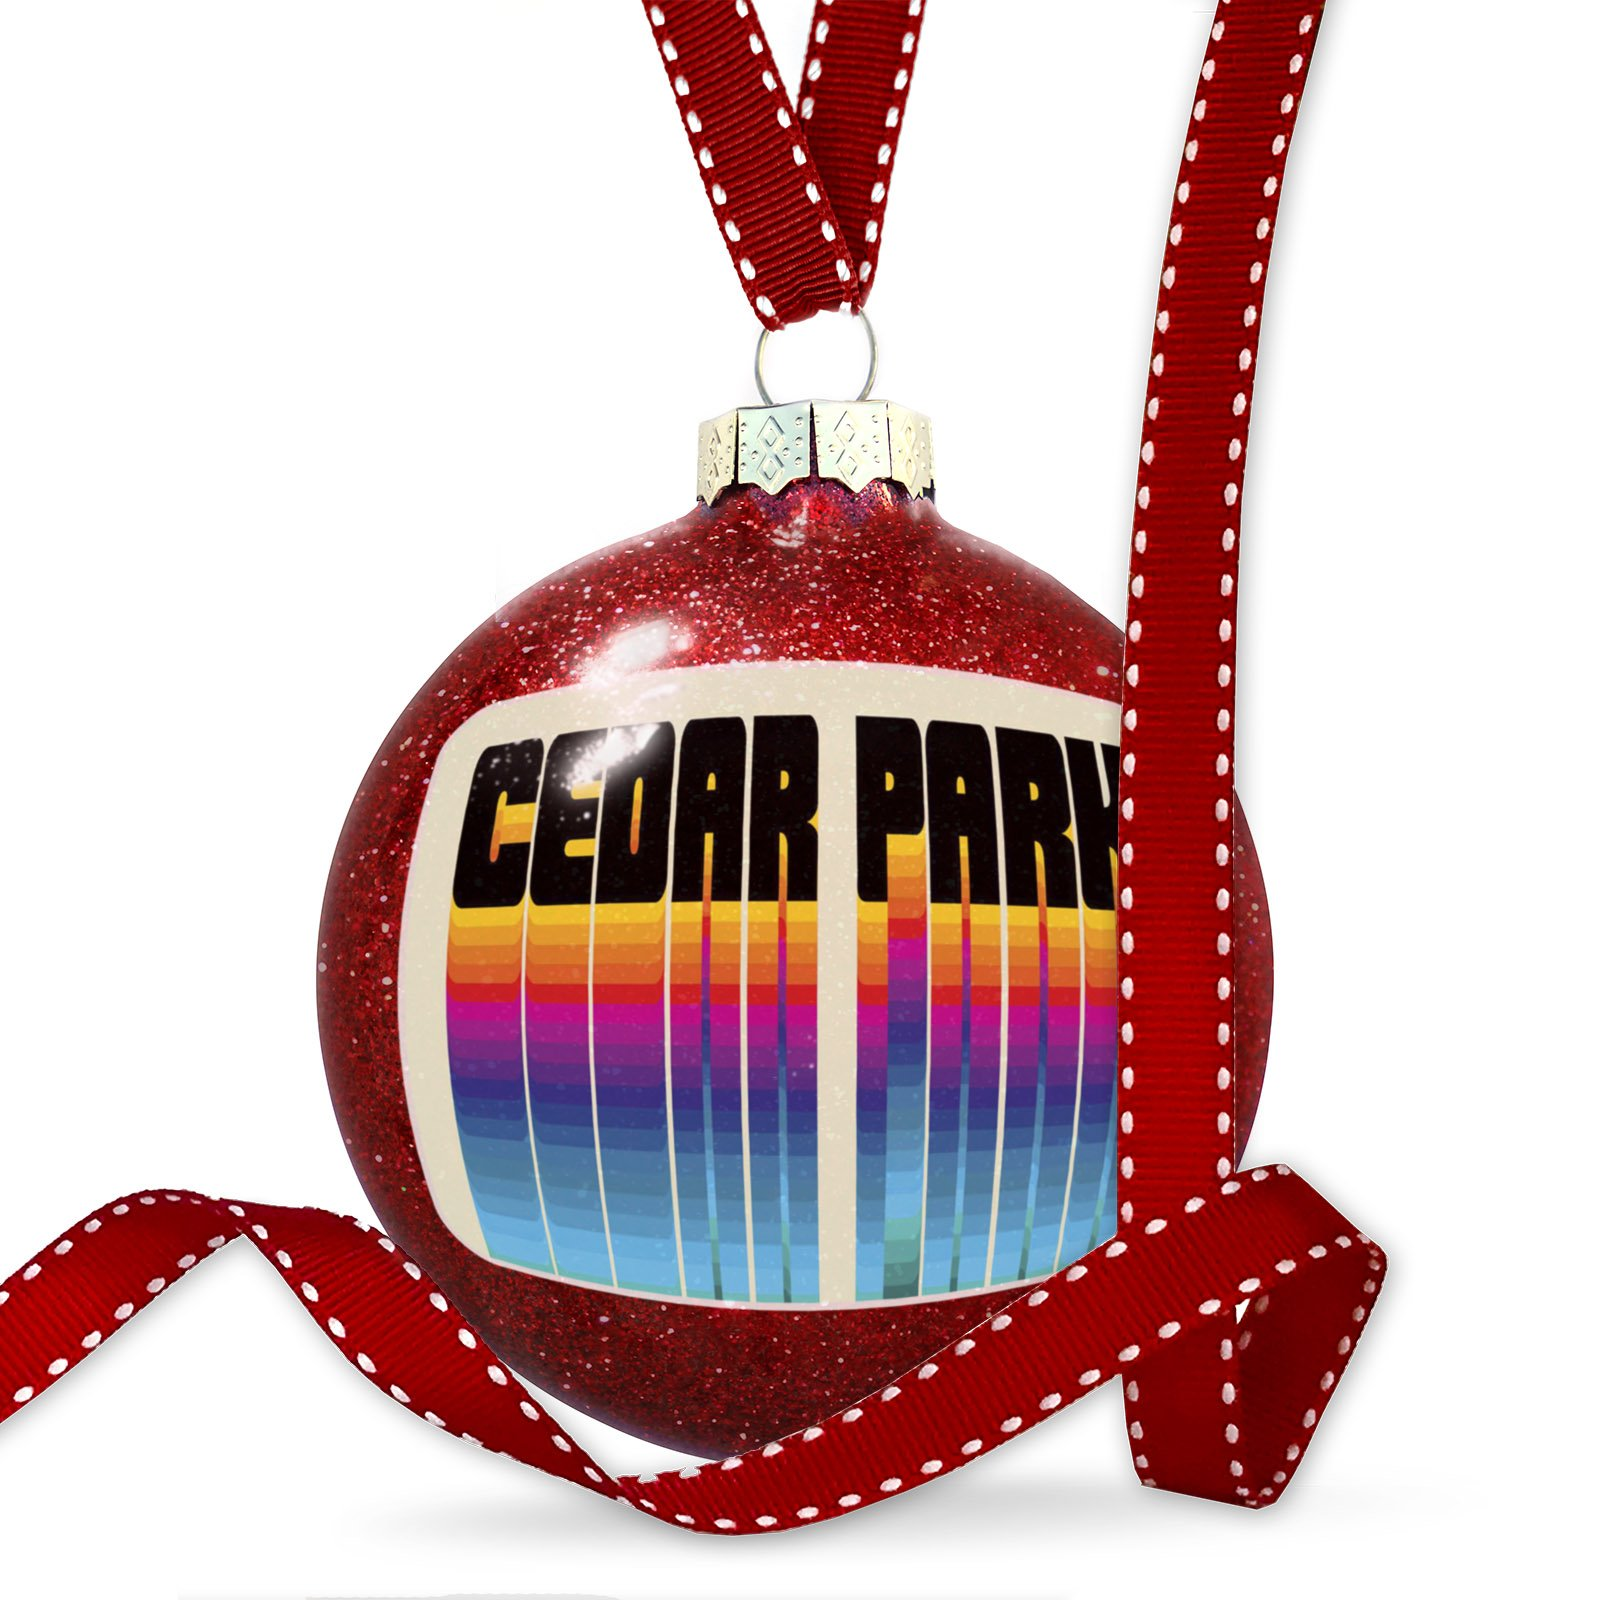 Christmas Decoration Retro Cites States Countries Cedar Park Ornament by NEONBLOND (Image #1)